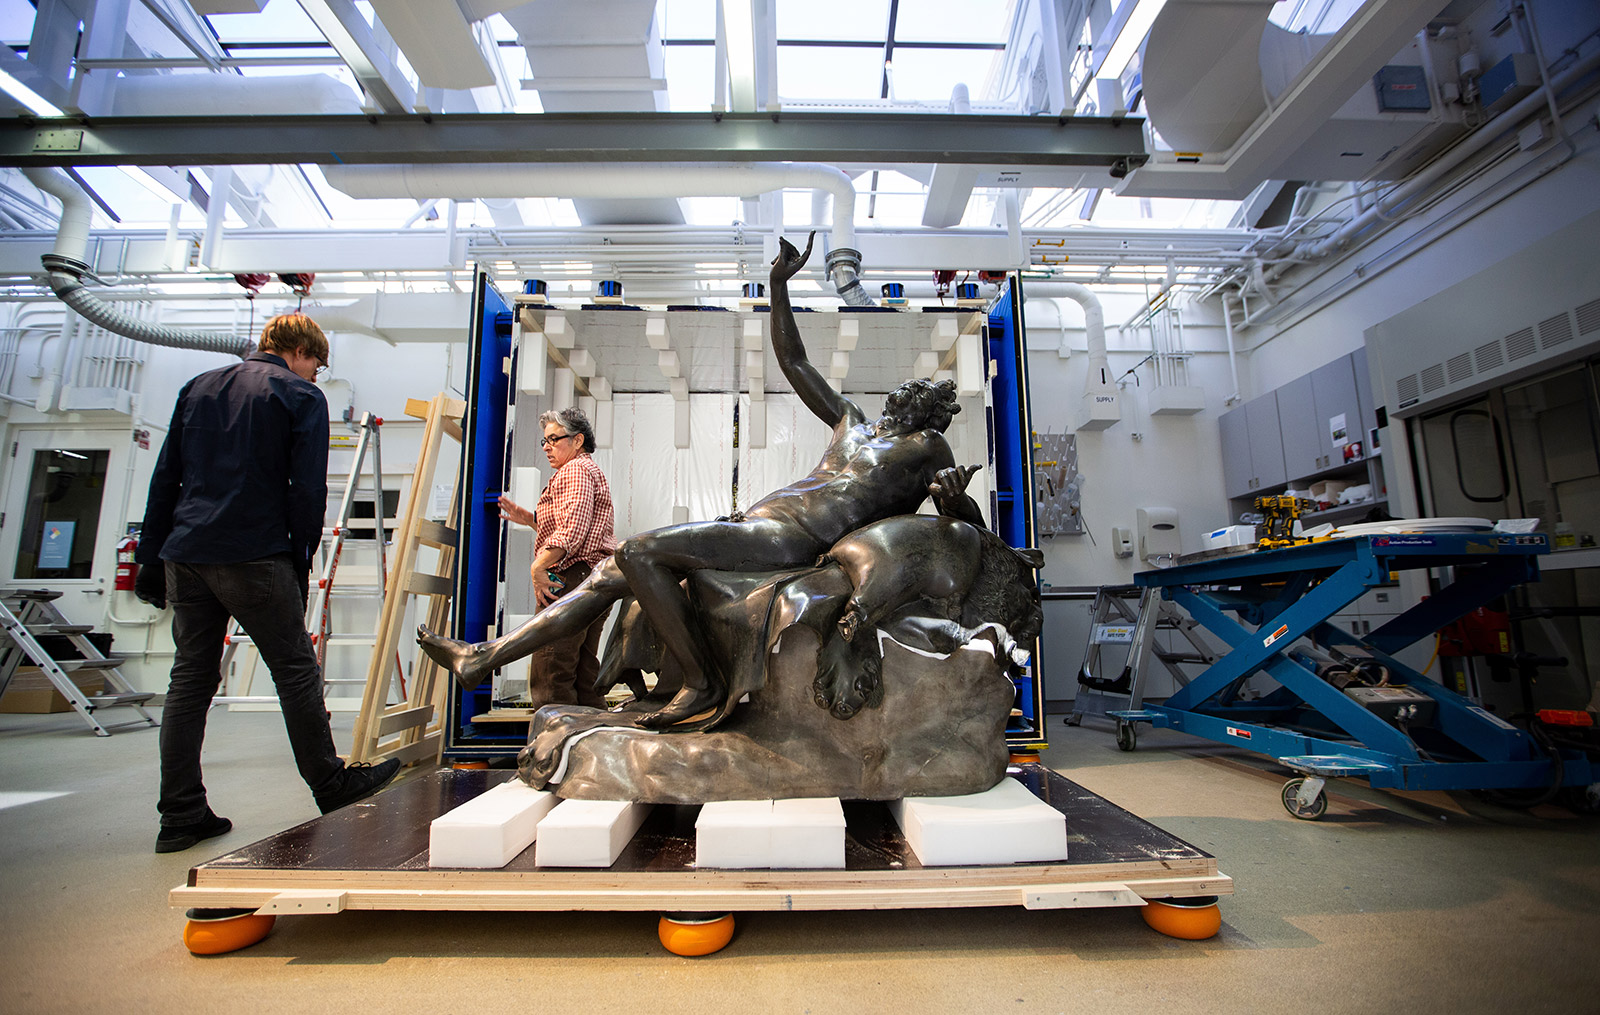 A man and a woman standing near a large bronze of a reclining male figure, half removed from its shipping crate